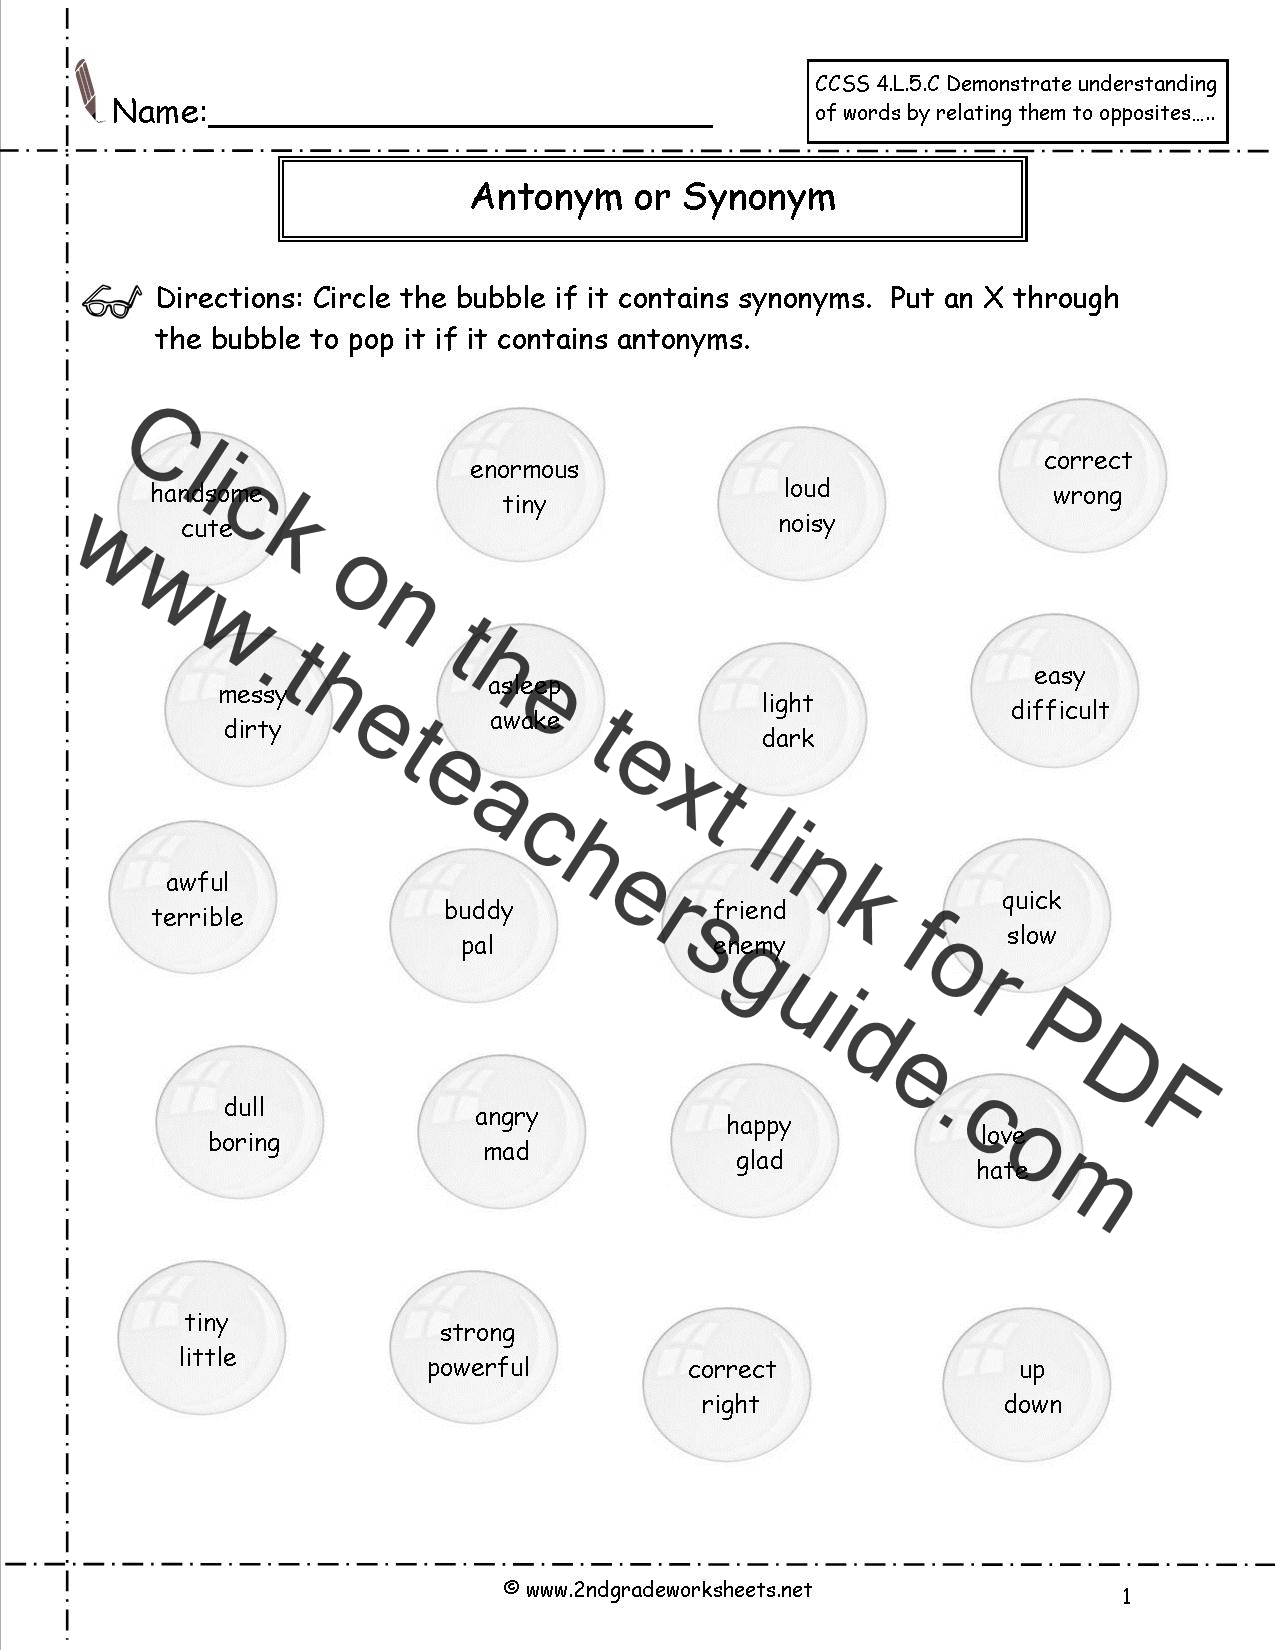 Synonyms and Antonyms Worksheets – Antonyms and Synonyms Worksheet